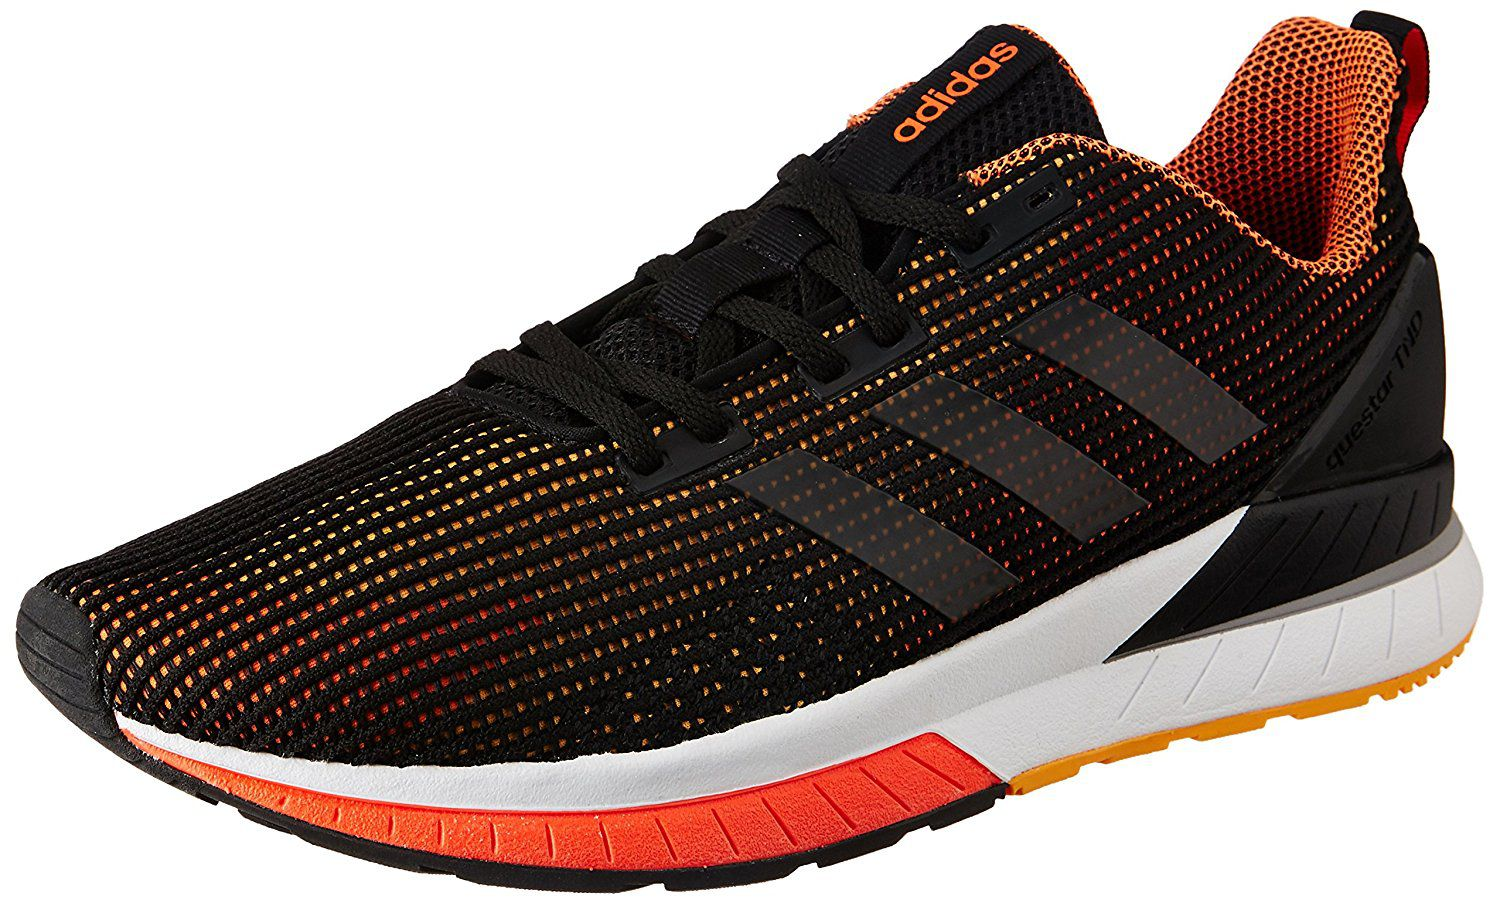 2d21698374e6 Adidas Questar TND Black Running Shoes - Buy Adidas Questar TND Black Running  Shoes Online at Best Prices in India on Snapdeal